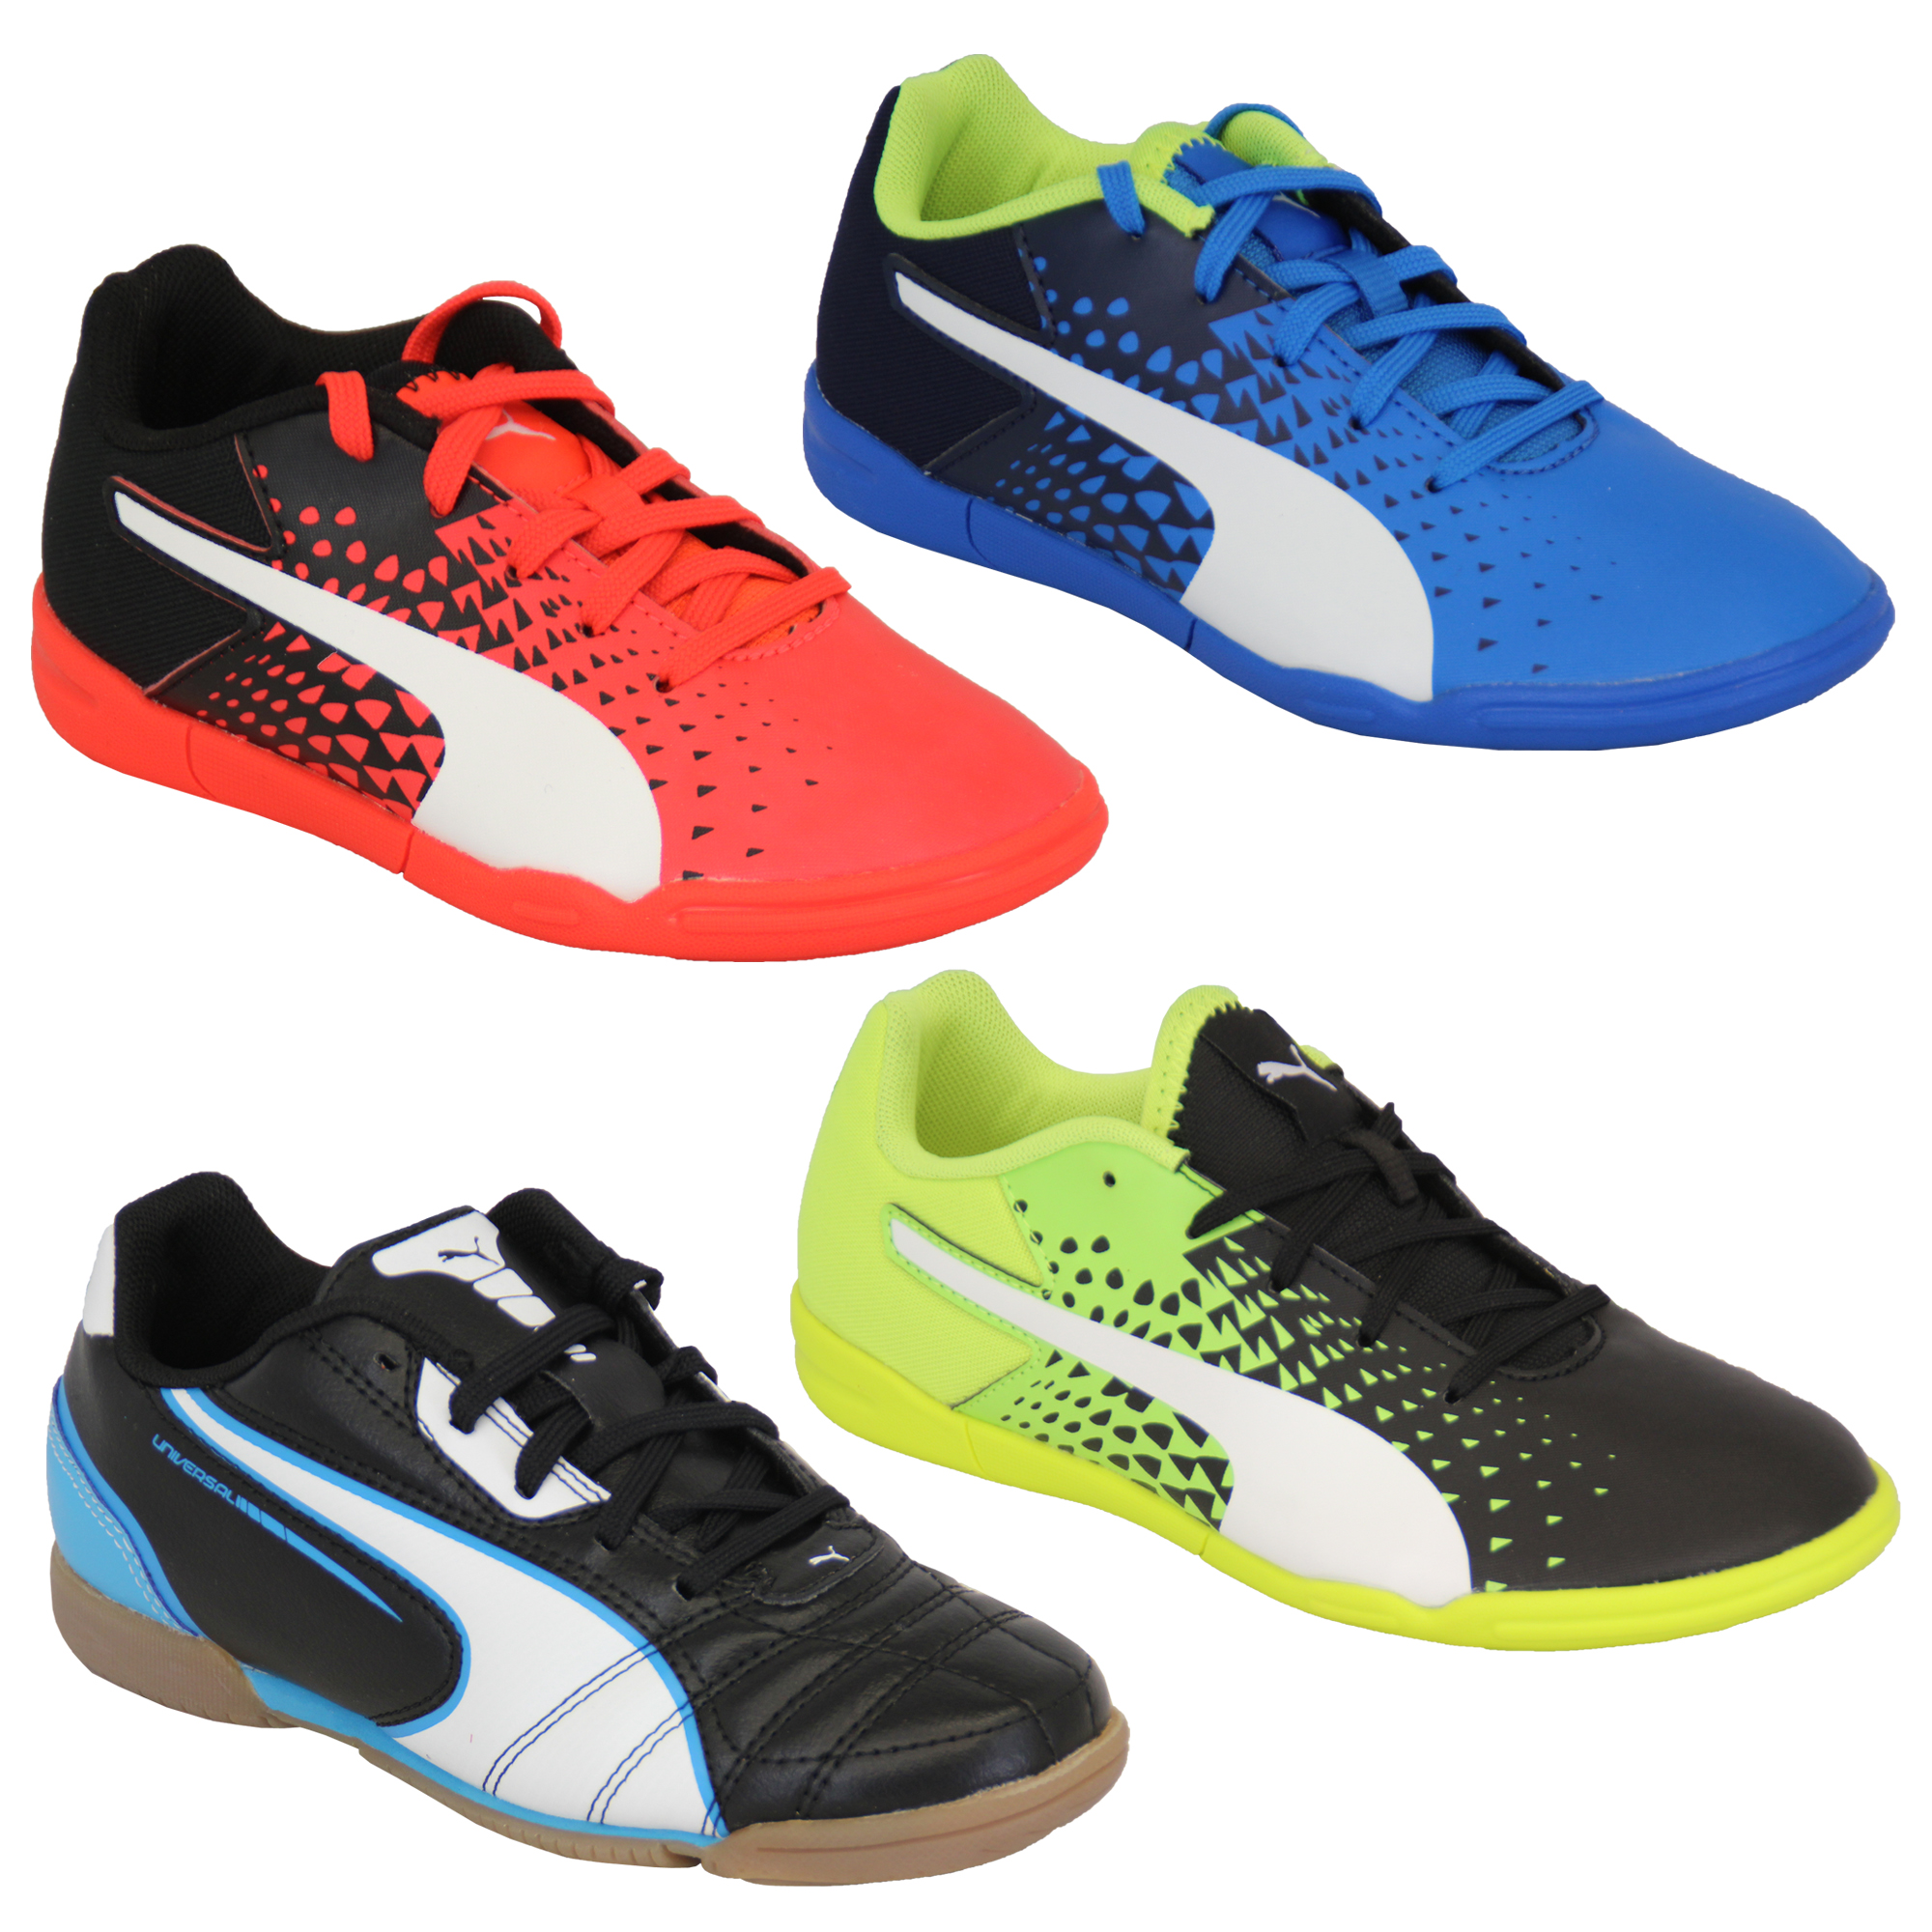 7f6aacb53ec Boys Football Trainers PUMA Kids Astro Turf Evo Speed Universal ...